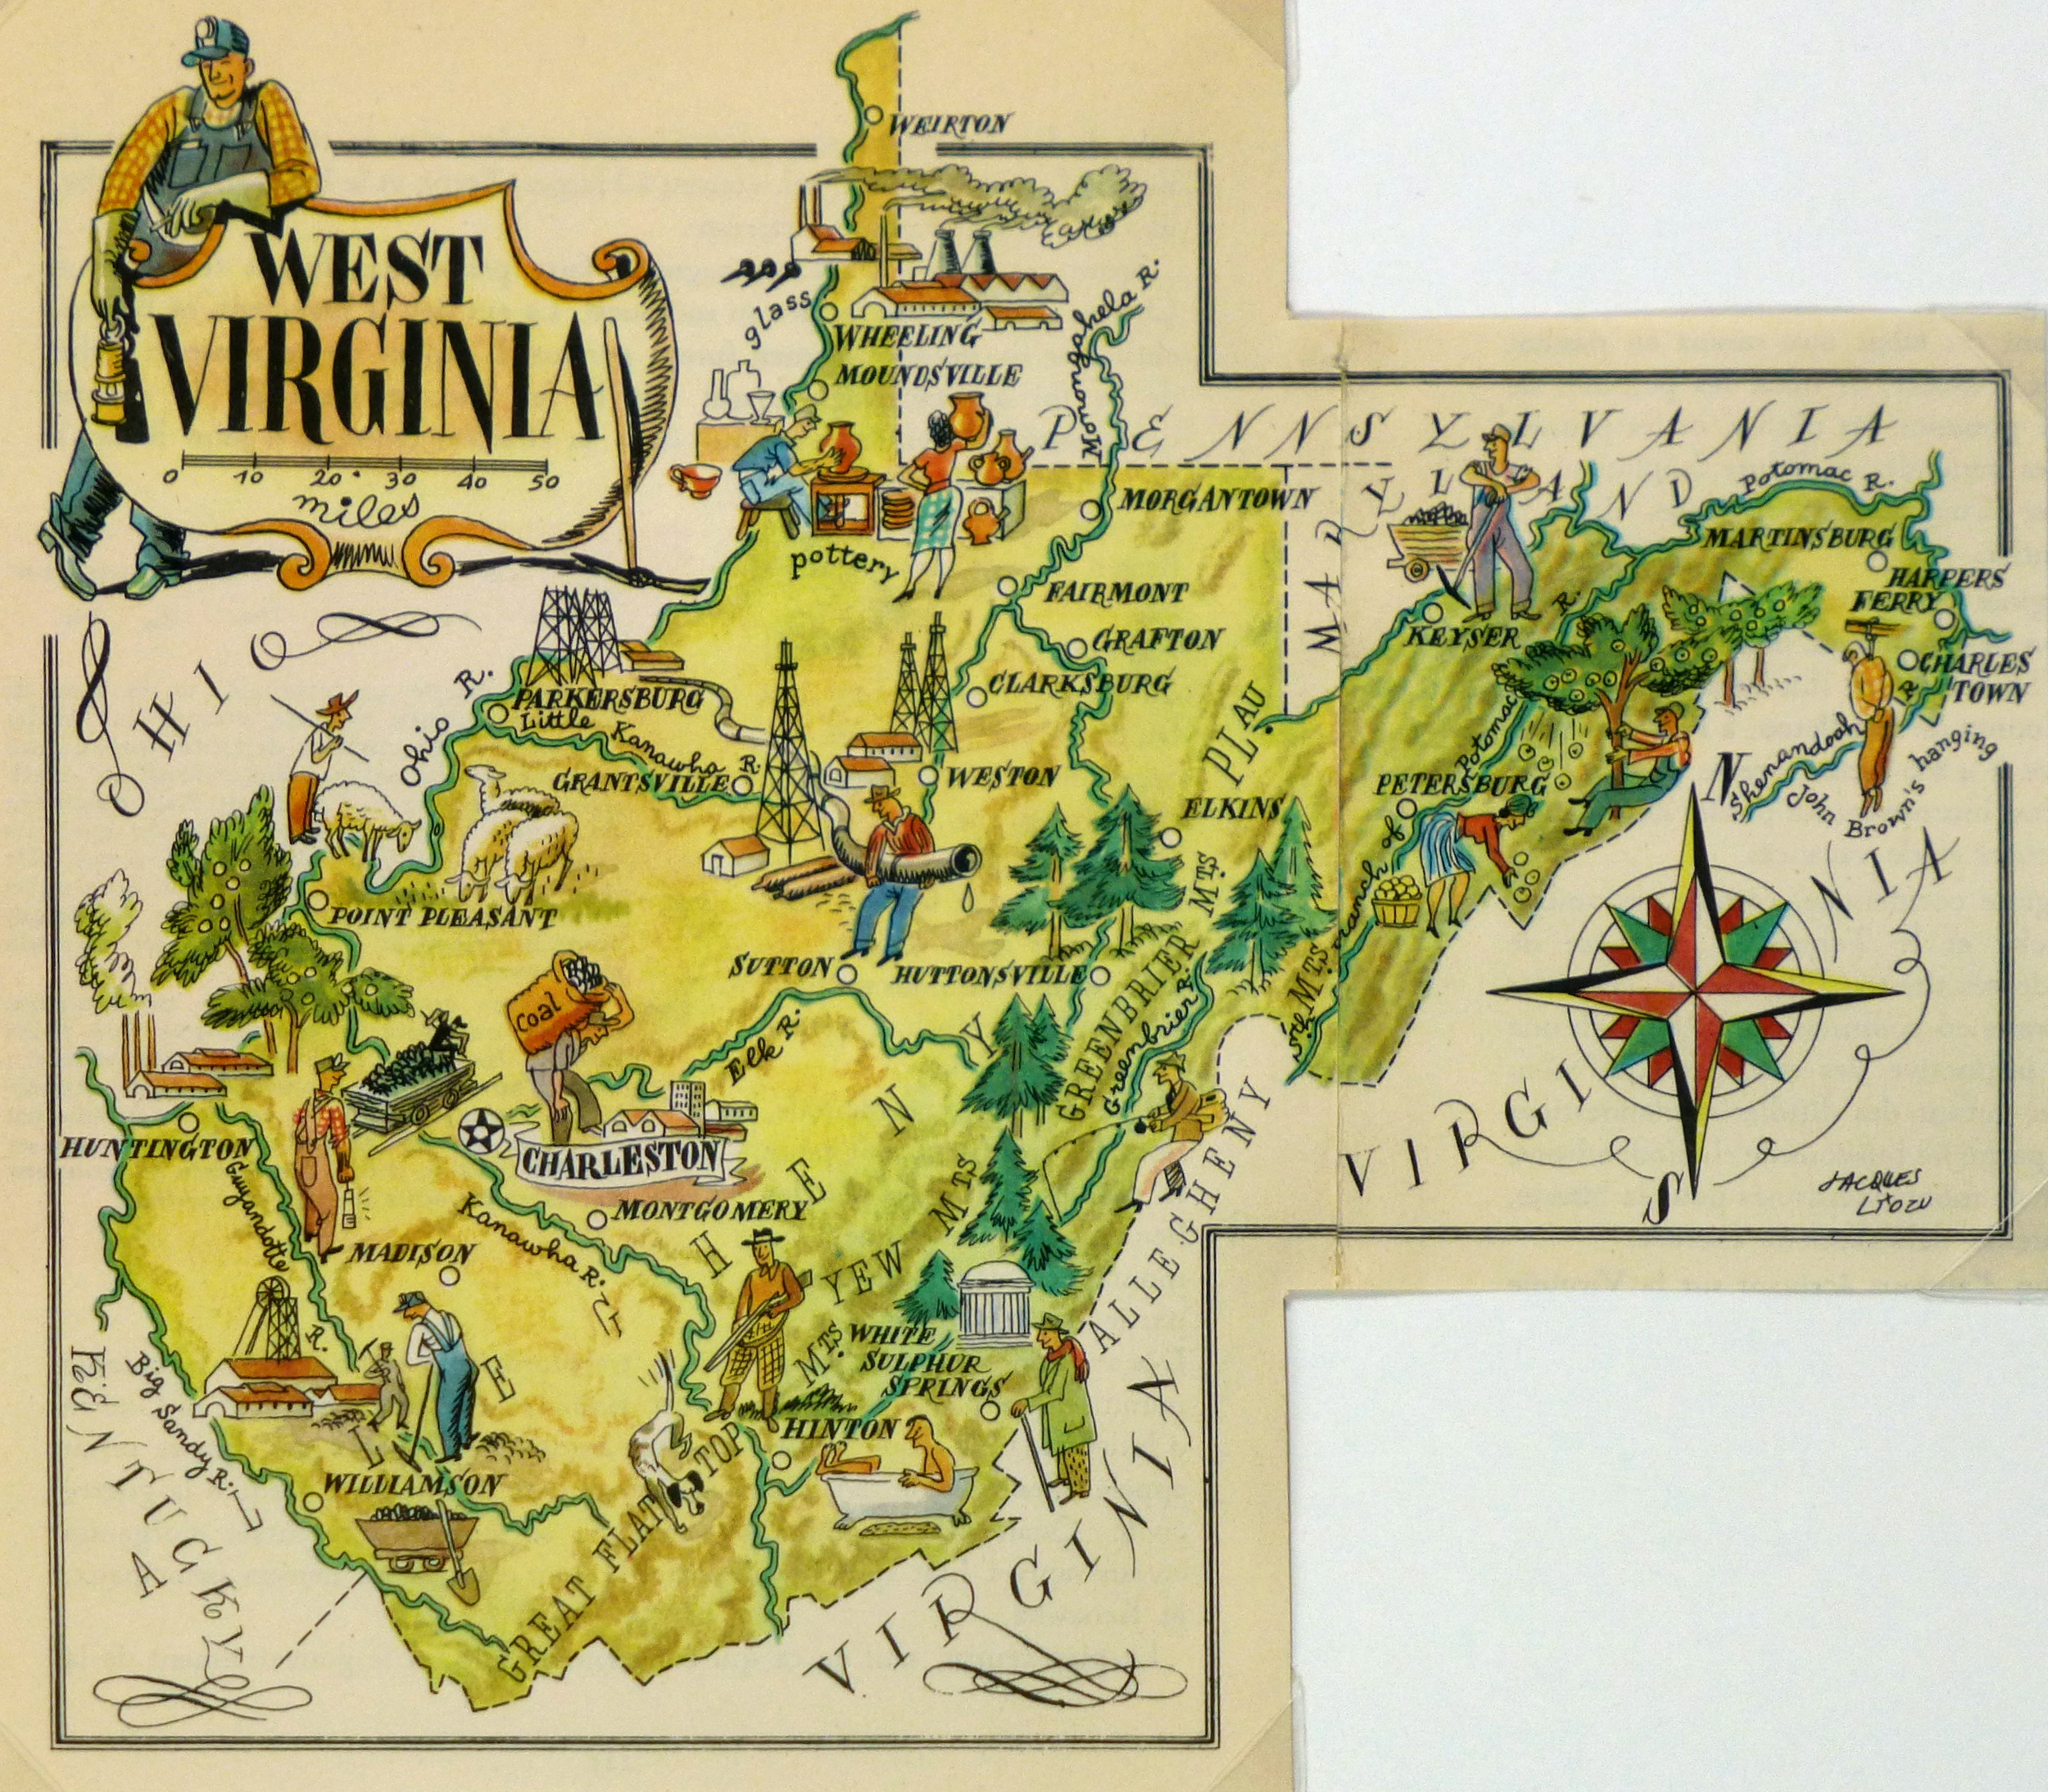 West Virginia Pictorial Map, 1946-main-6273K